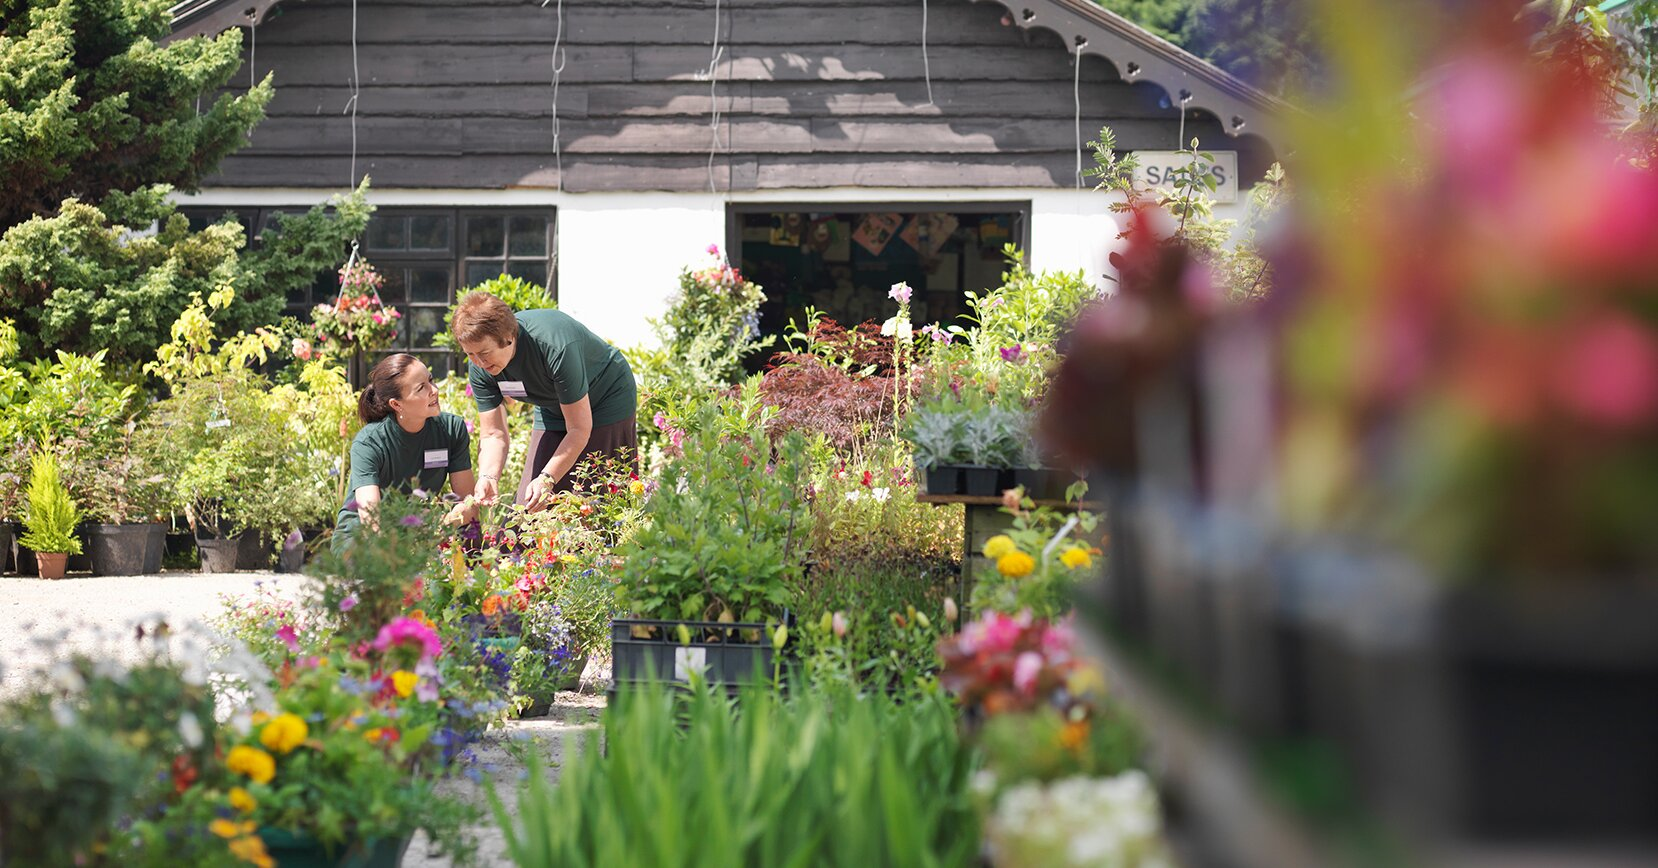 What to Look for When Purchasing Annual Flowers at a Garden Center